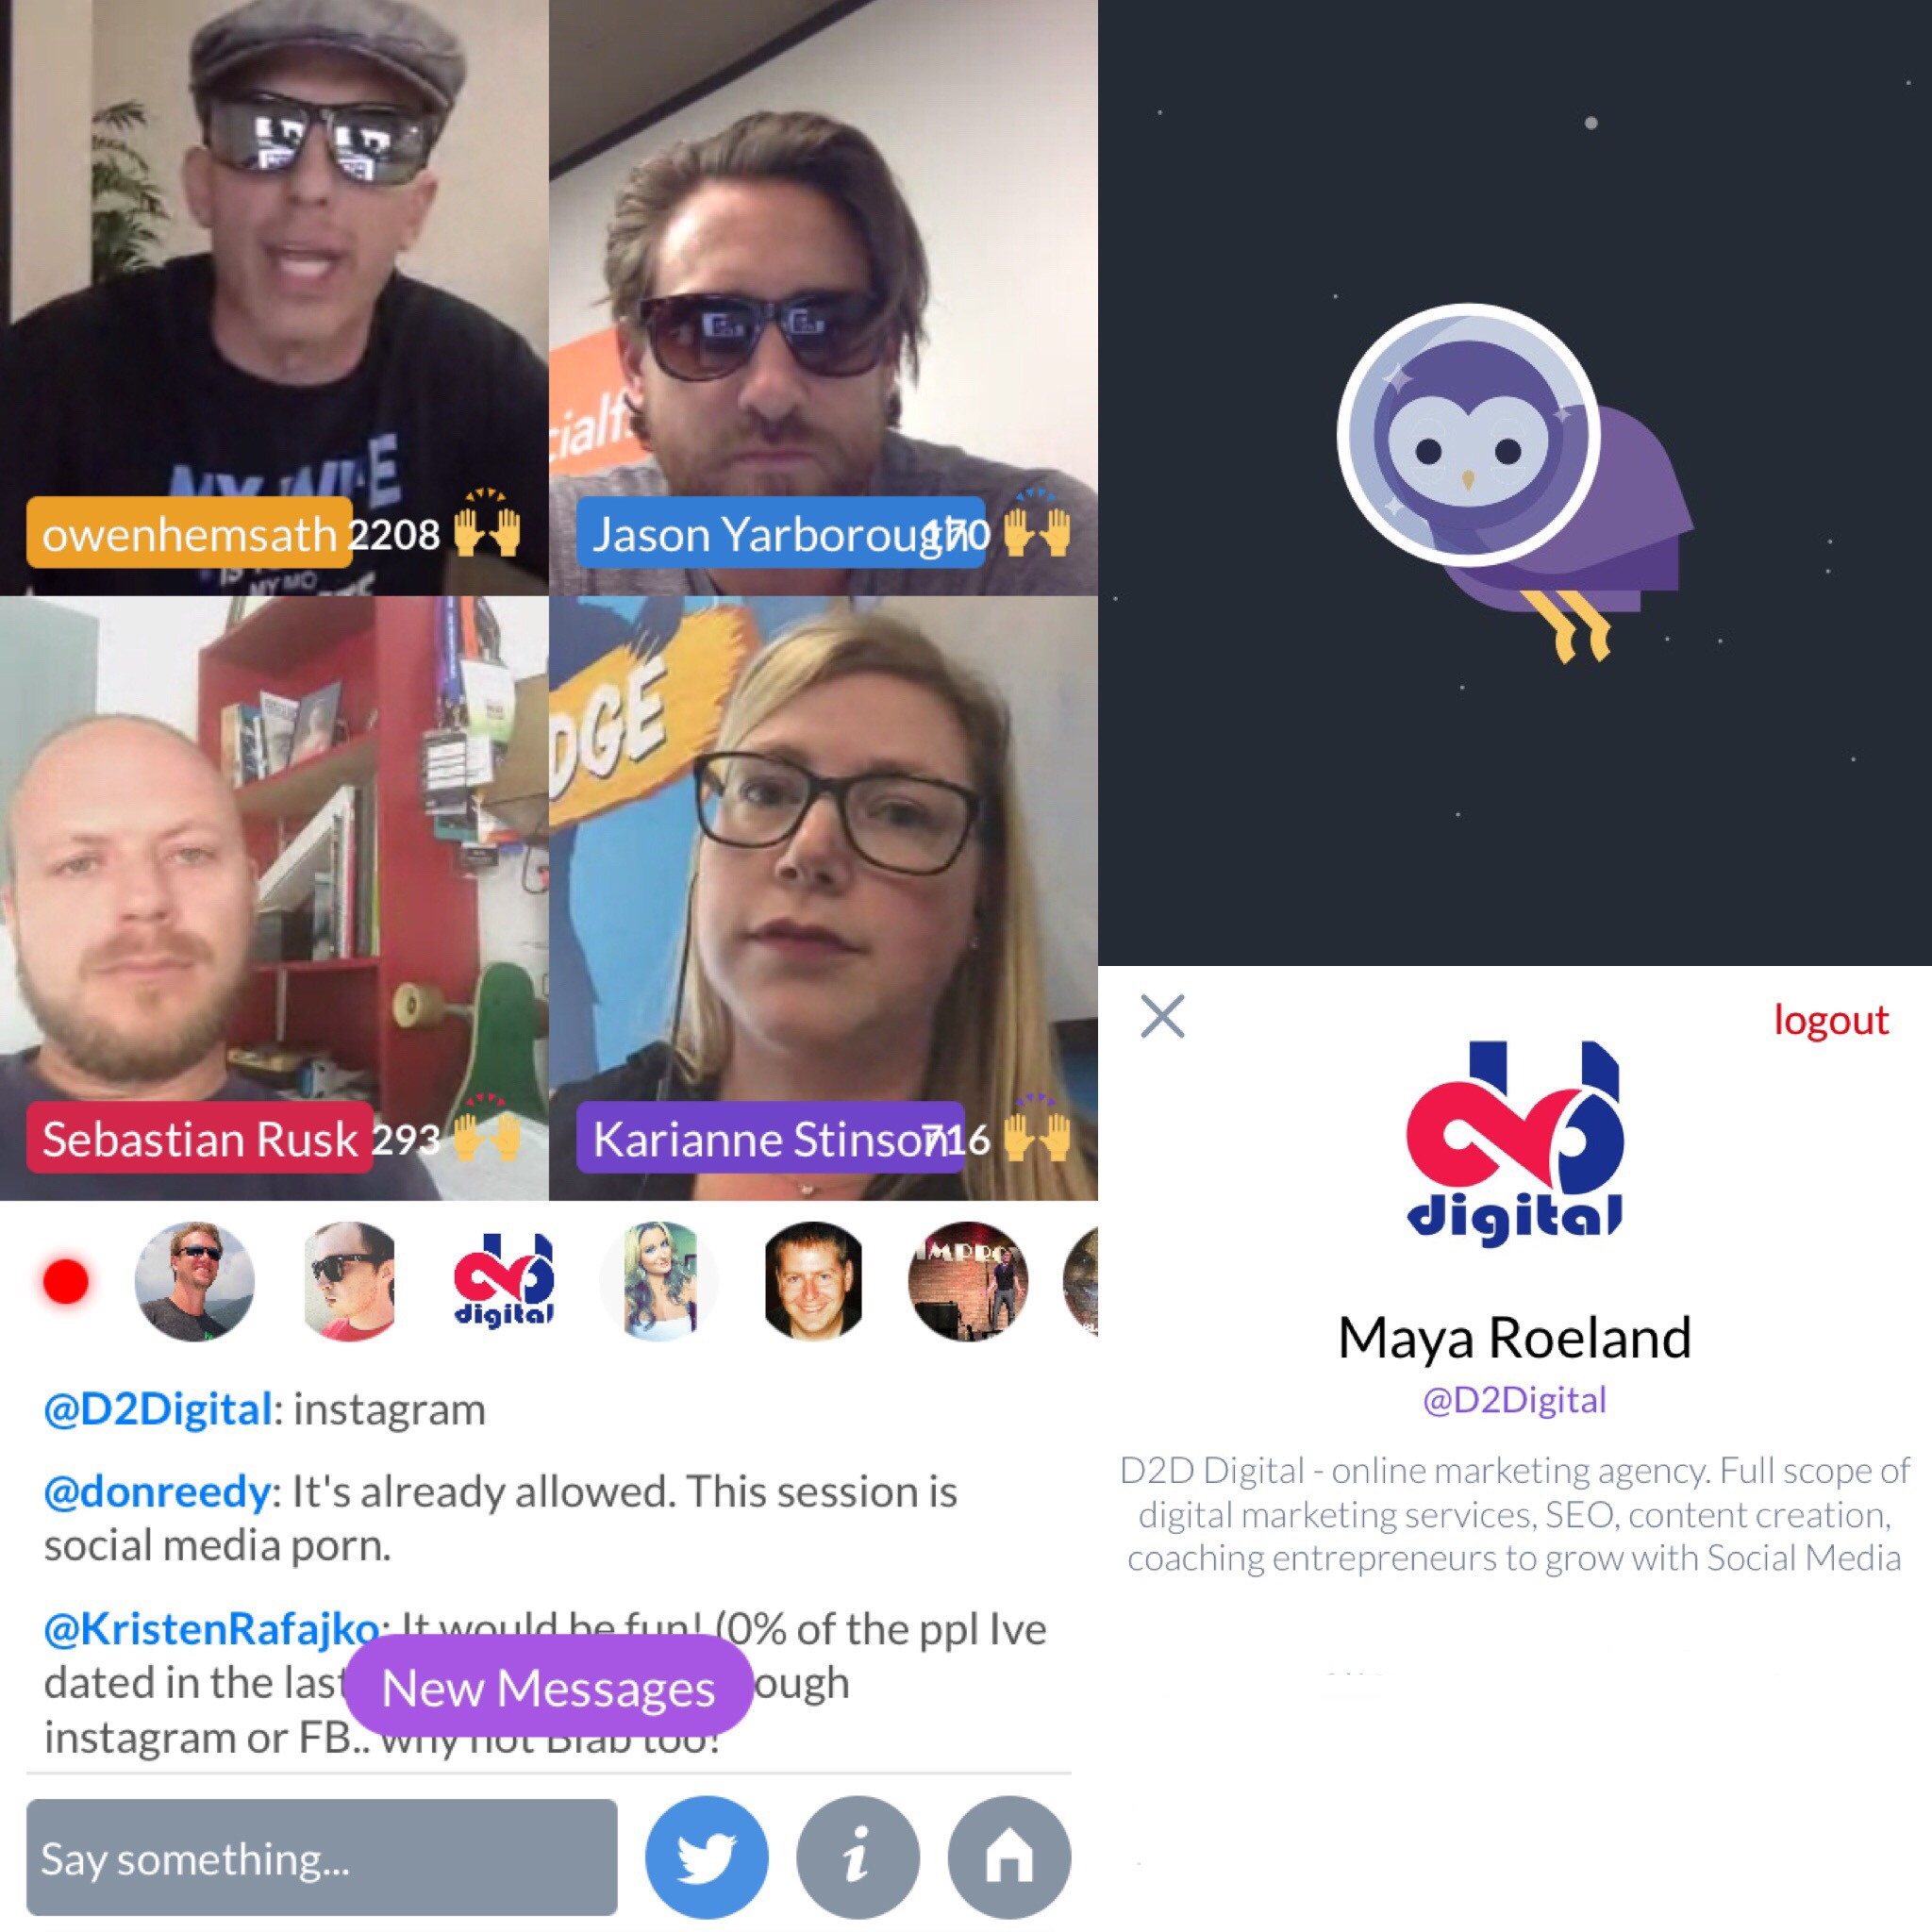 New Video Chat Blab Where You Can Switch Places With The Host